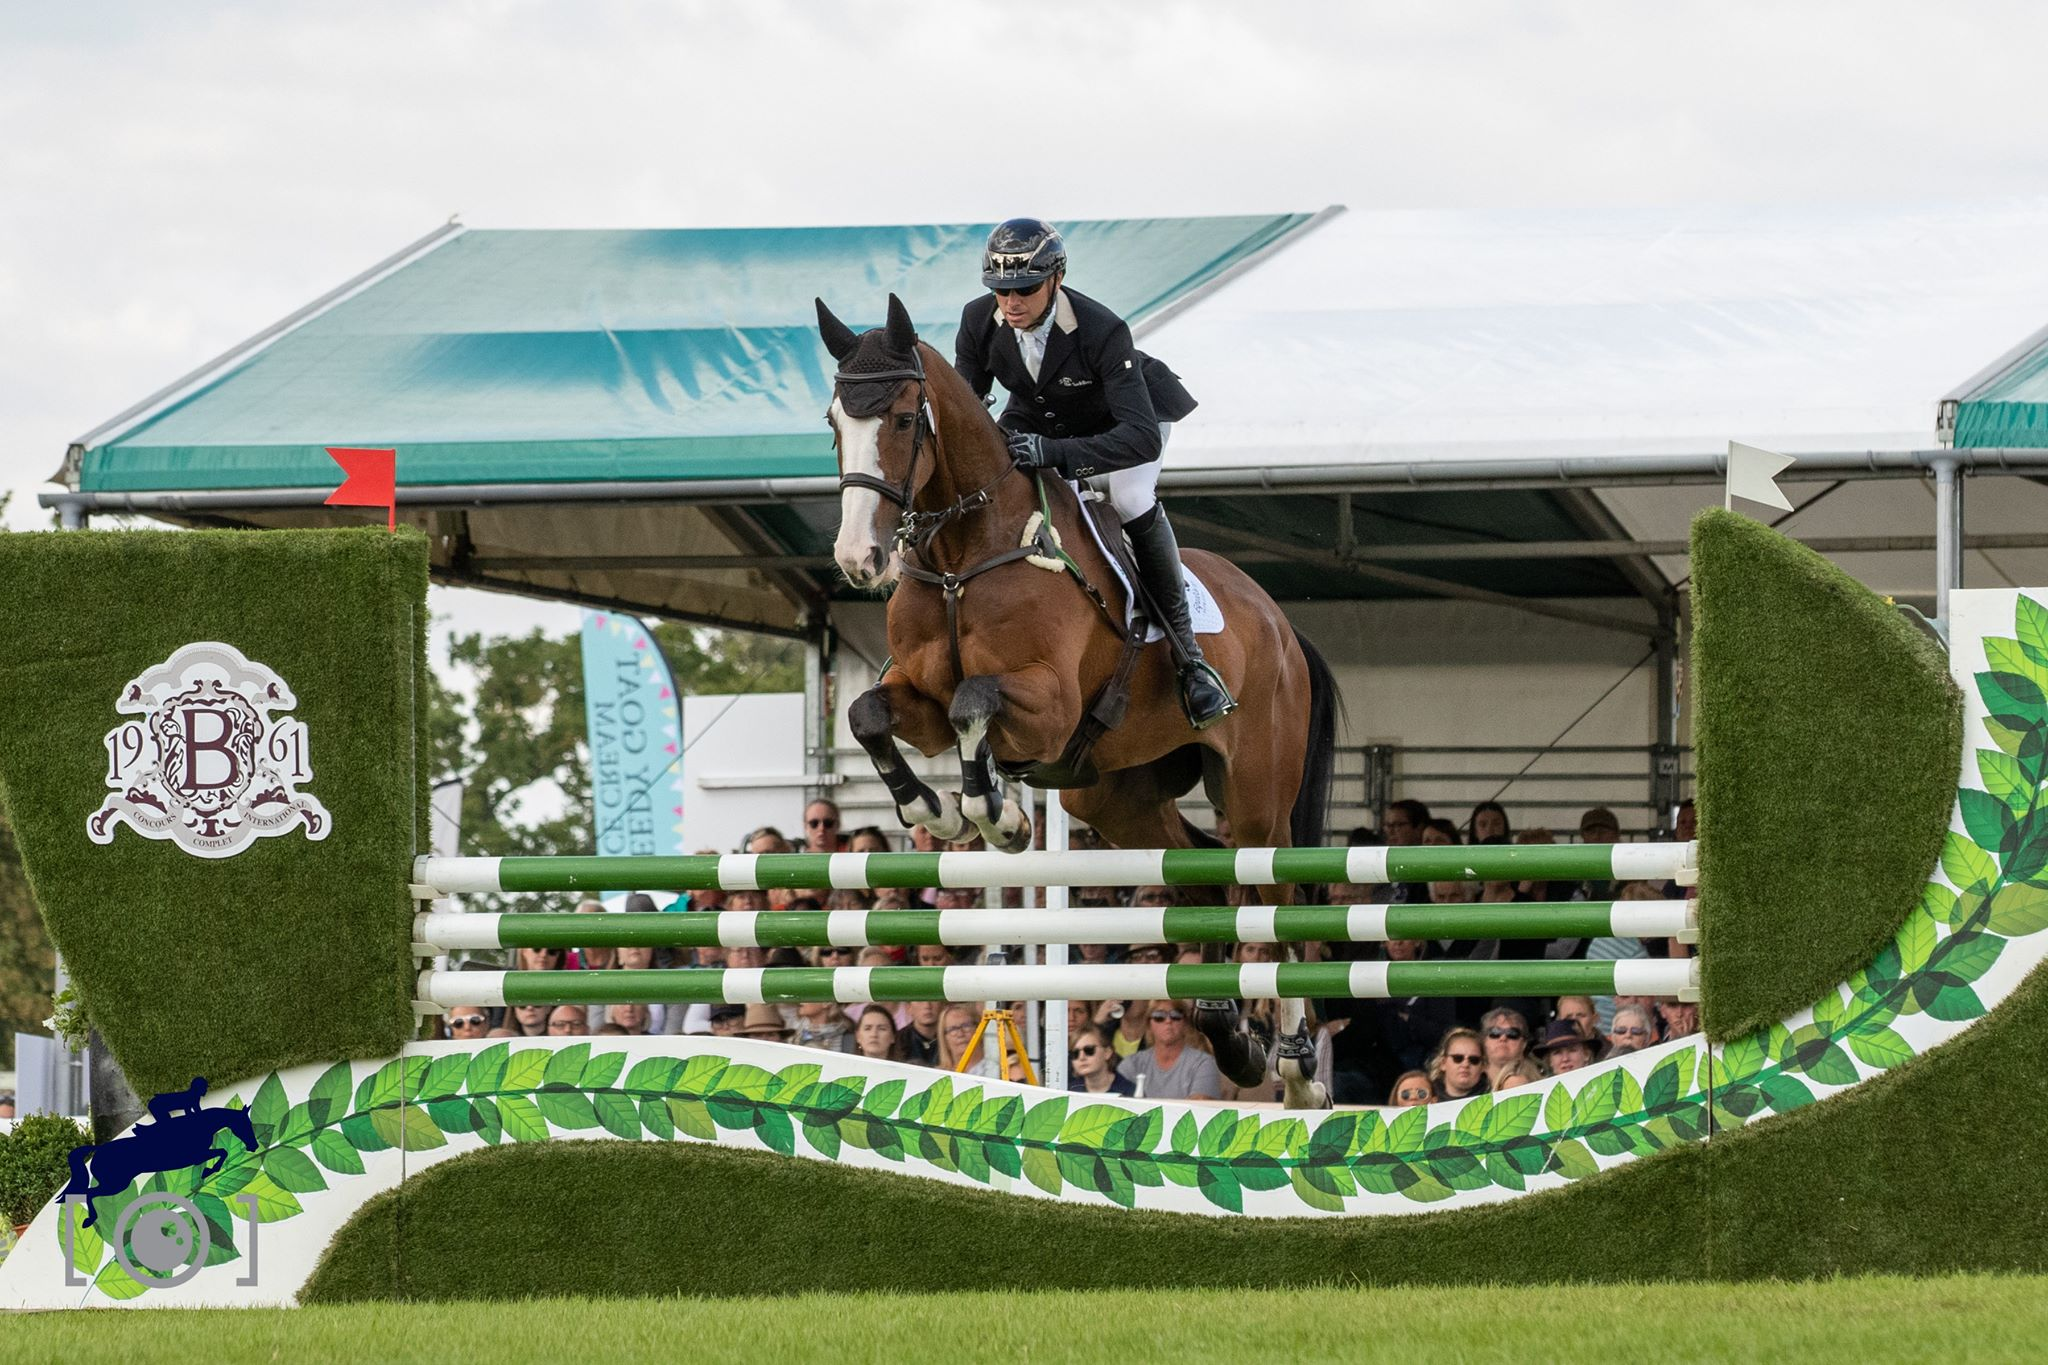 Michael Owen And Bradeley Law Finish Go Clear In The Showjumping To Finish 19th At Burghley 2019